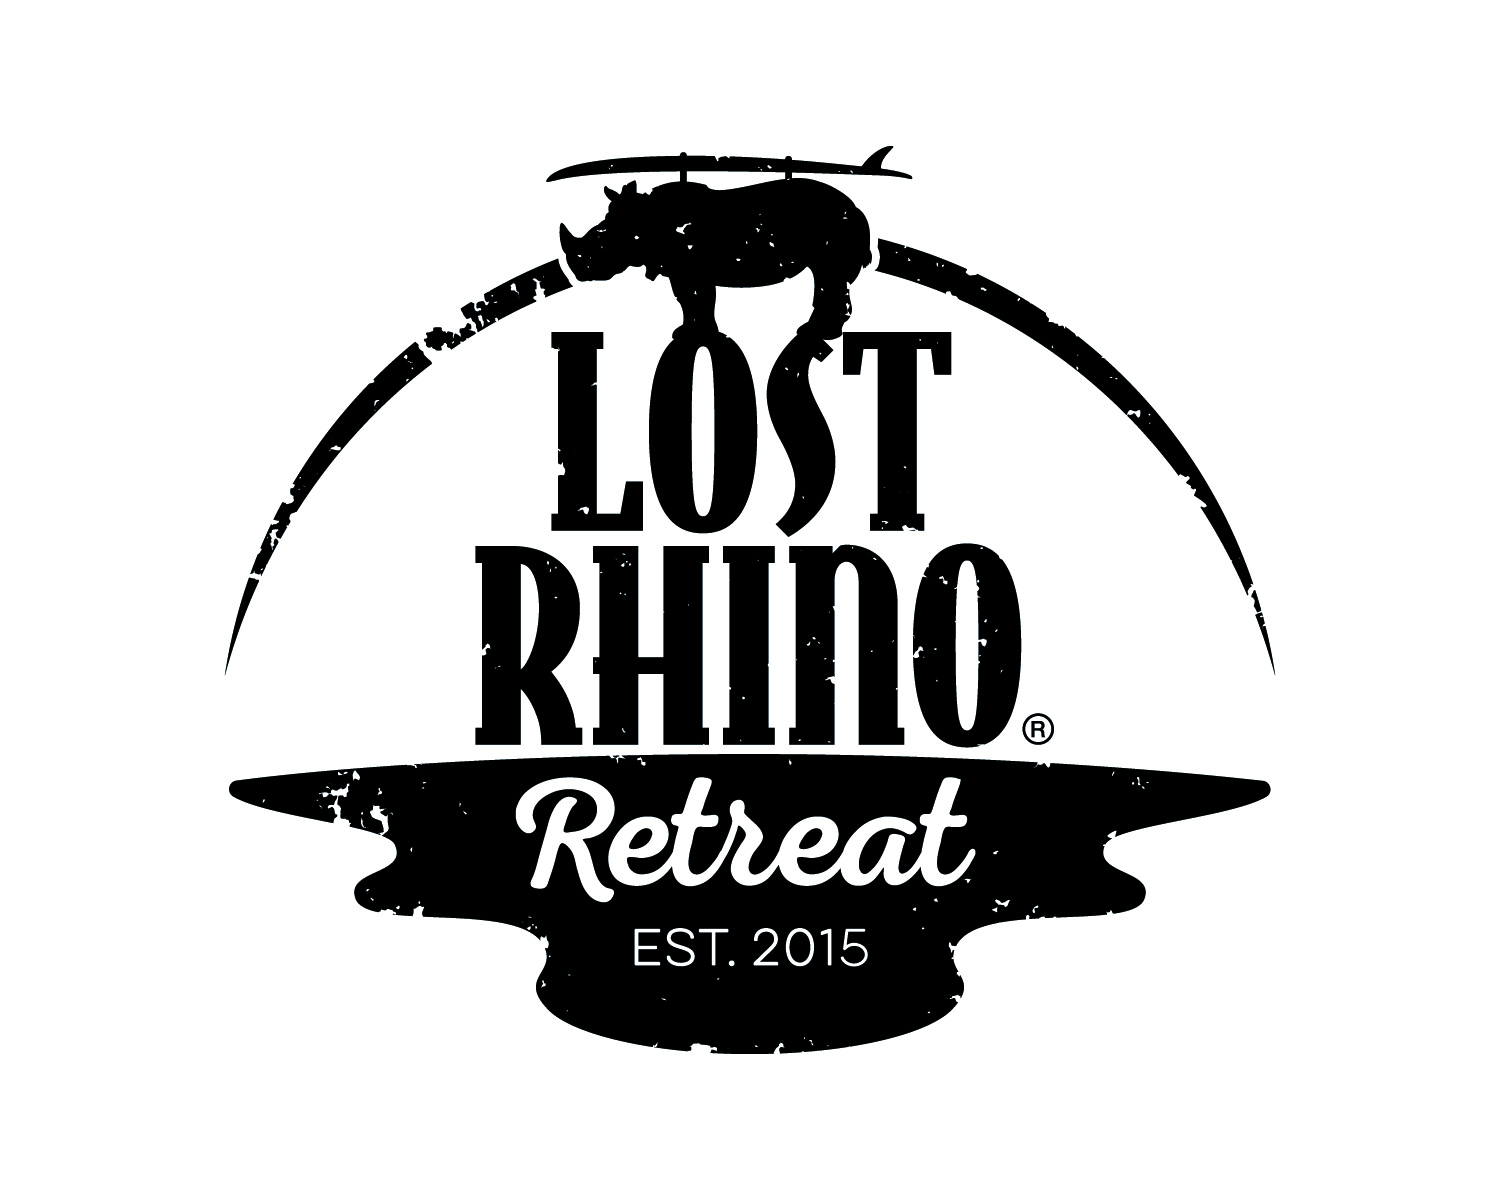 Lost Rhino Retreat FINAL LOGO